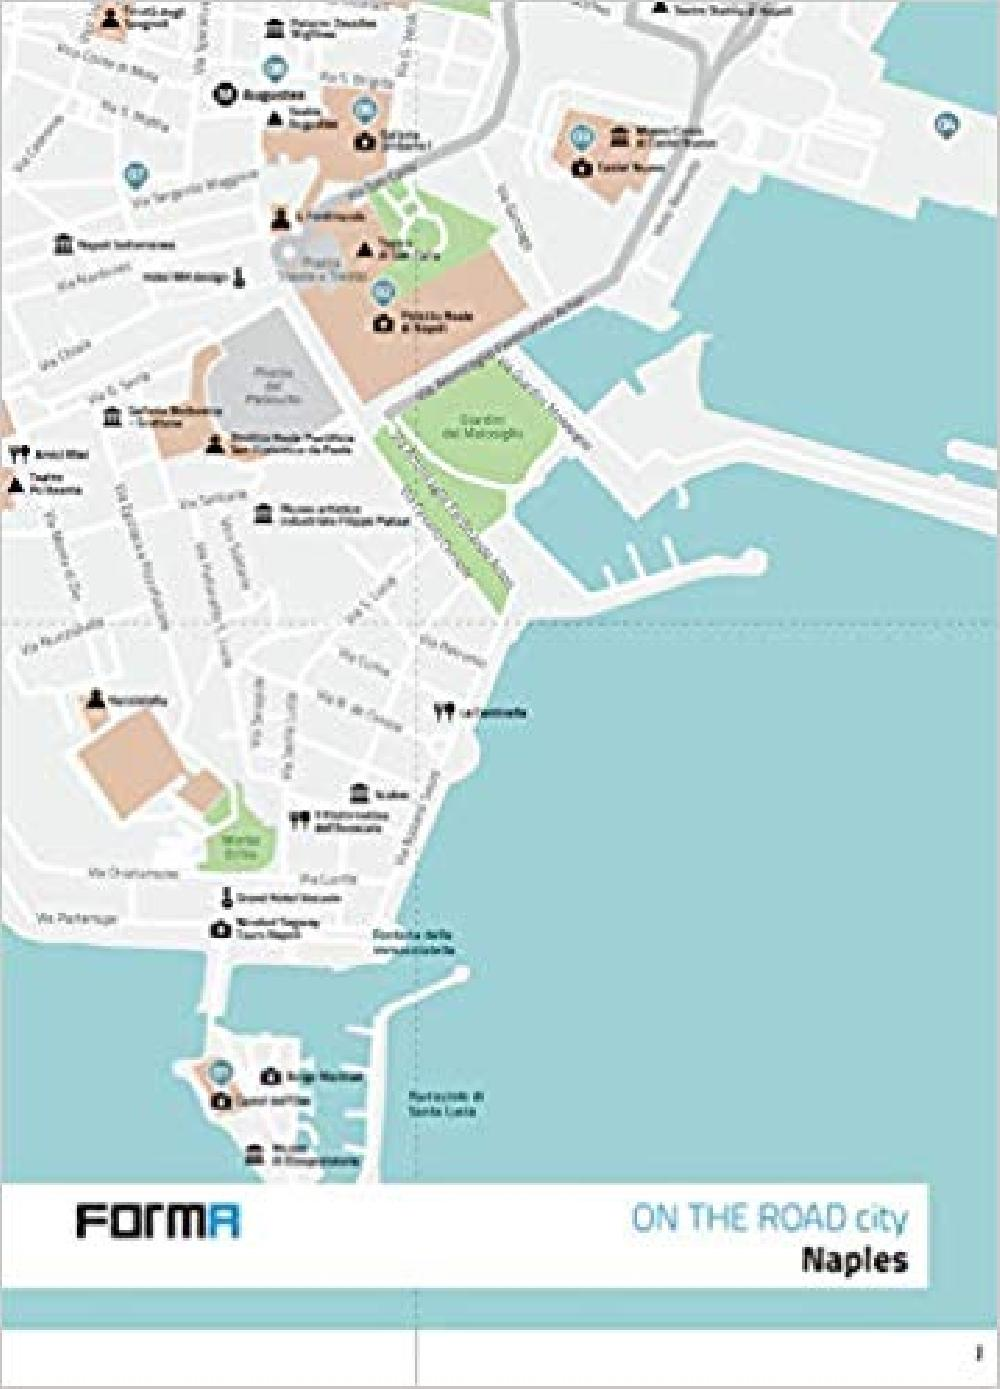 Naples (On the Road City Architecture Guides)